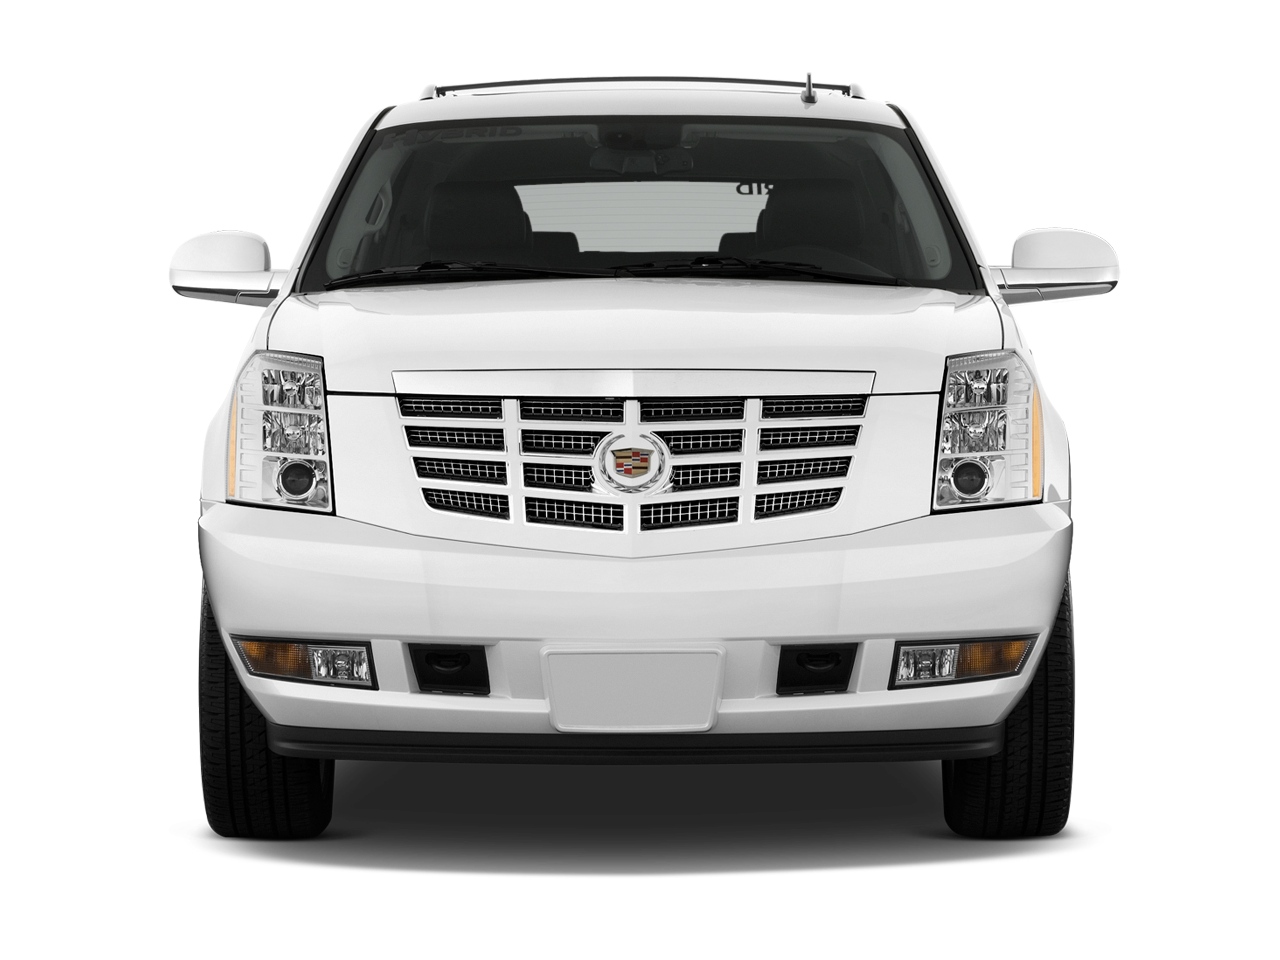 2009 cadillac escalade hybrid first drive cadillac hybrid suv. Cars Review. Best American Auto & Cars Review